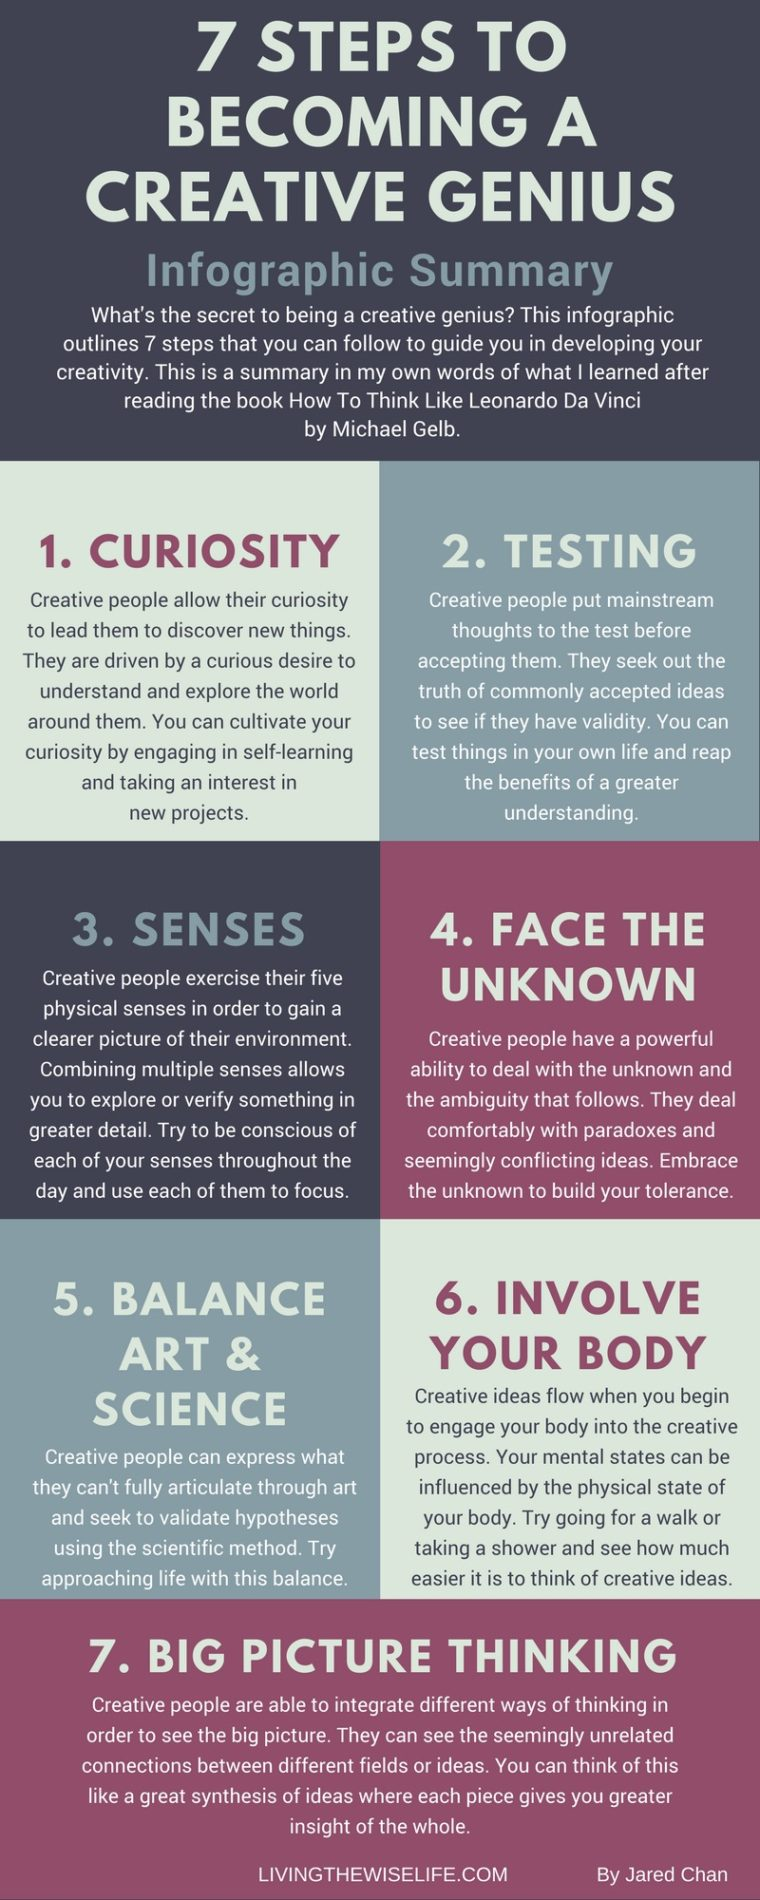 7 Steps To Become A Creative Genius - Infographic